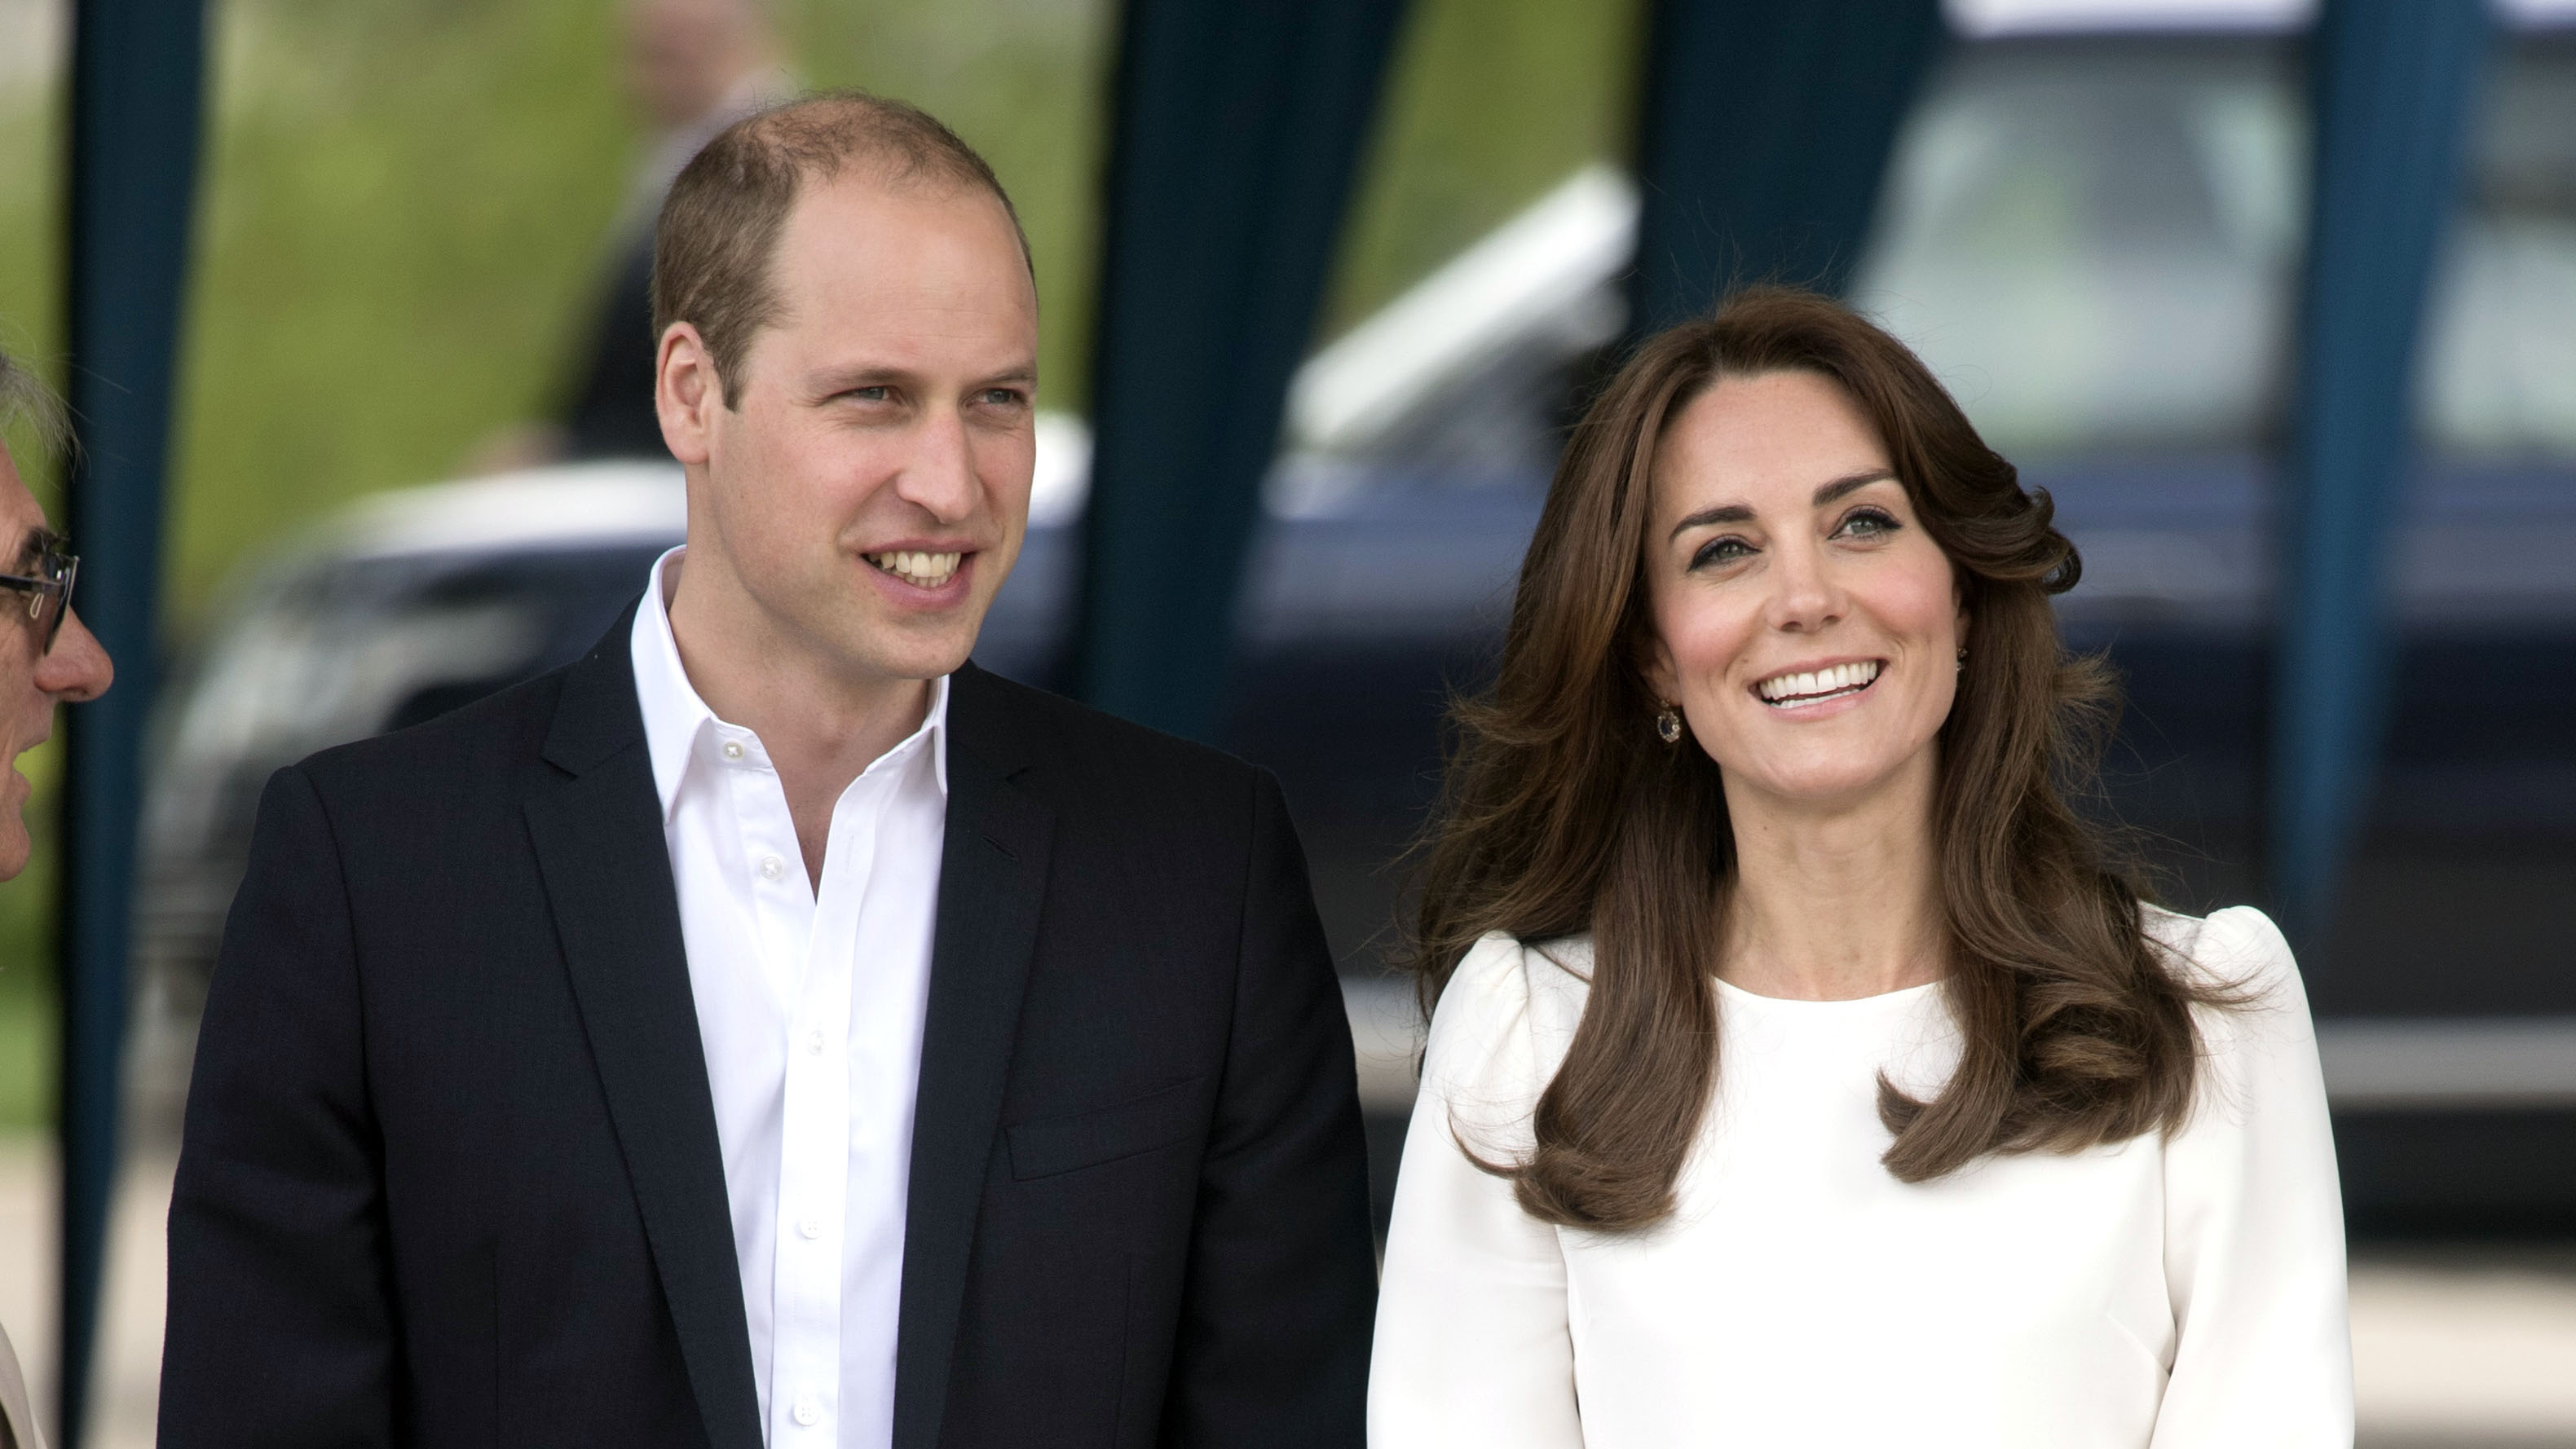 Prince William Work The Duke Of Cambridge Hangs Up His